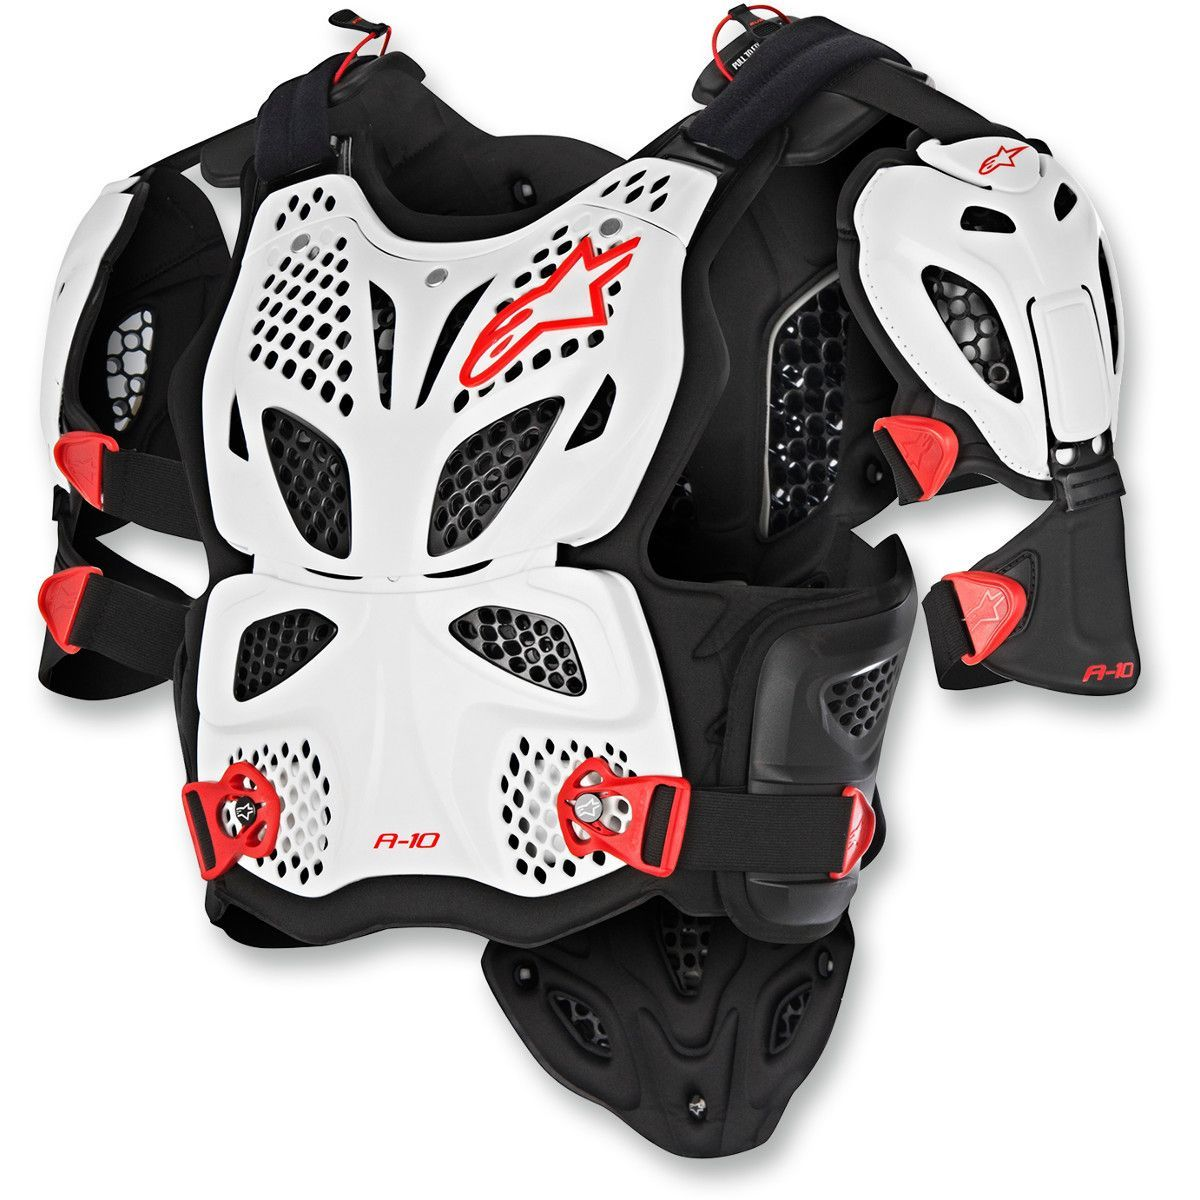 Alpinestars A 10 Chest Protector Black And Red Alpinestars Body Armor